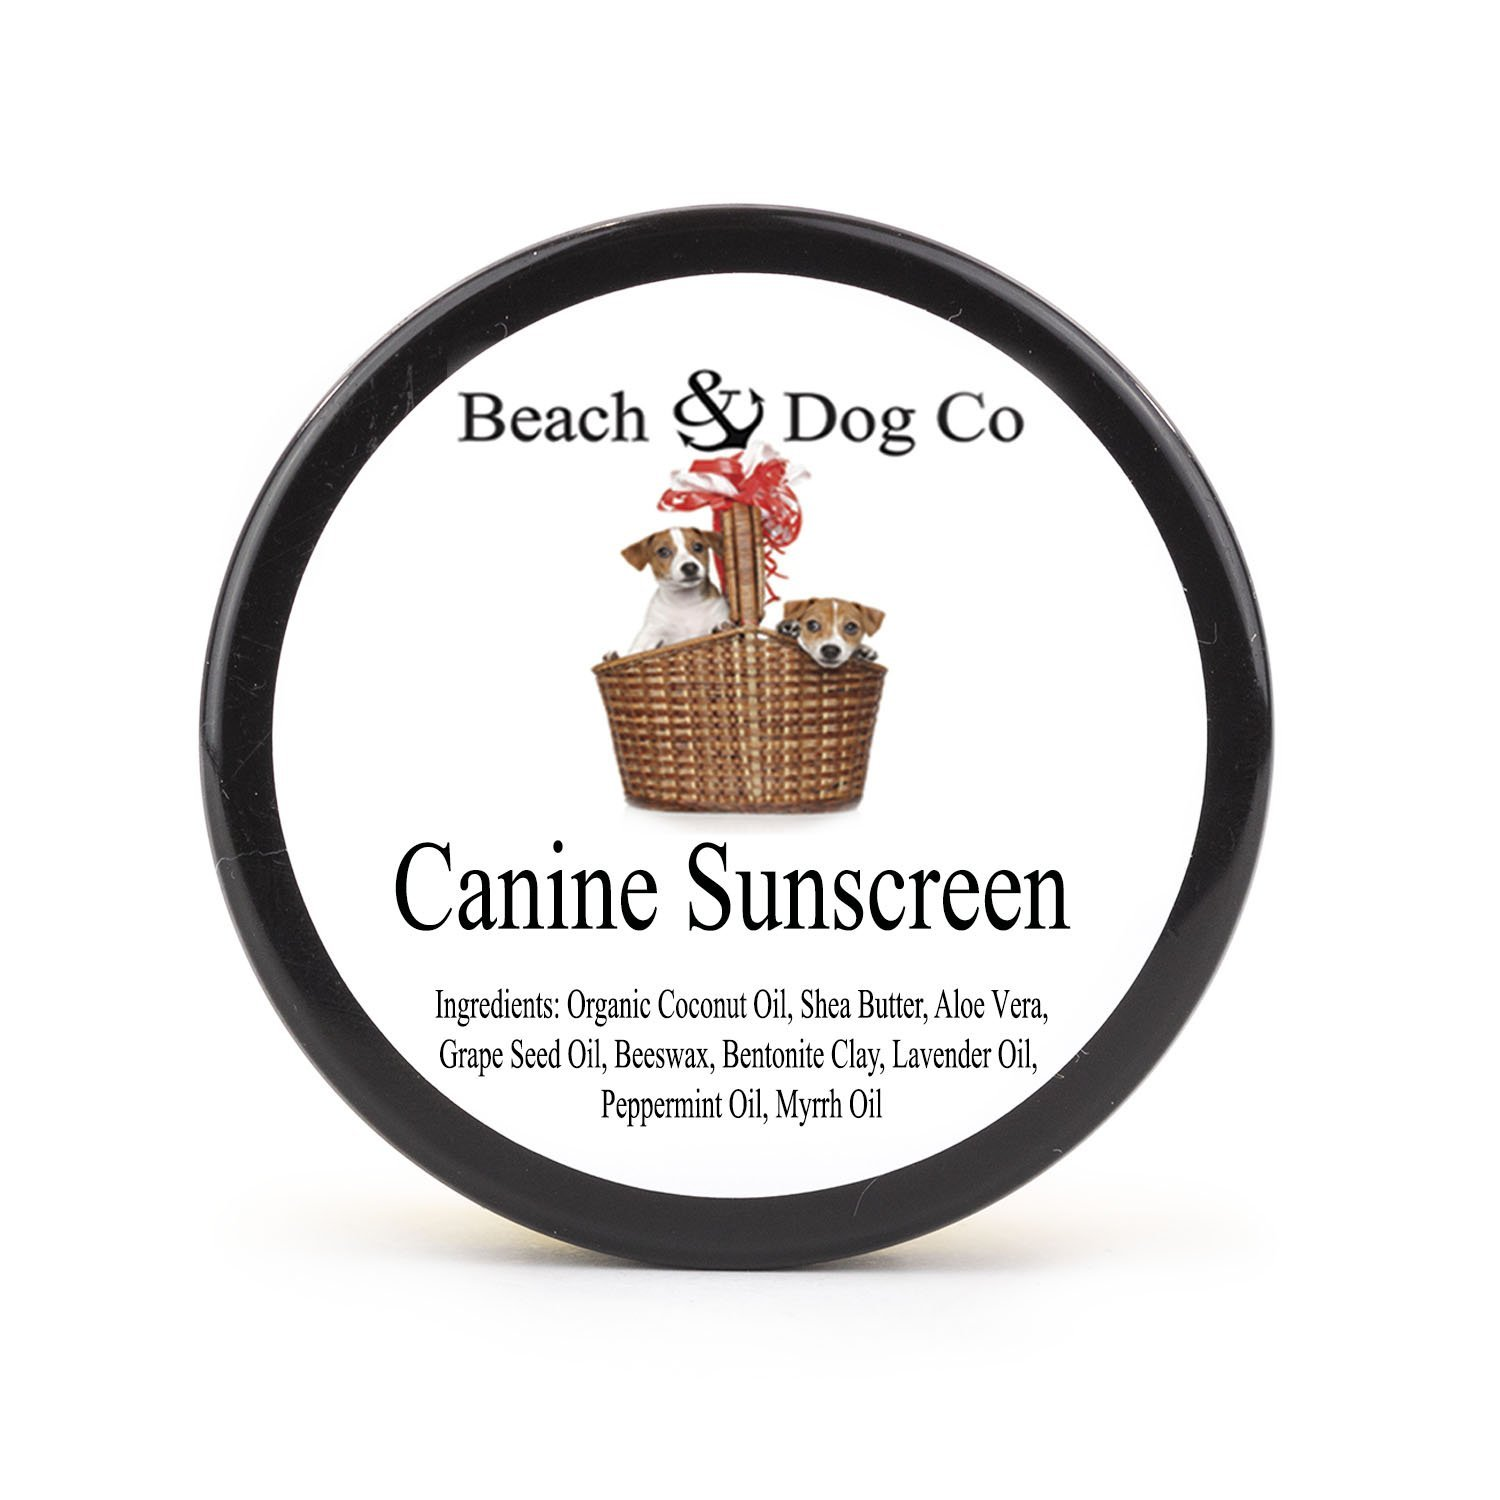 Natural Sun Protection for your pet